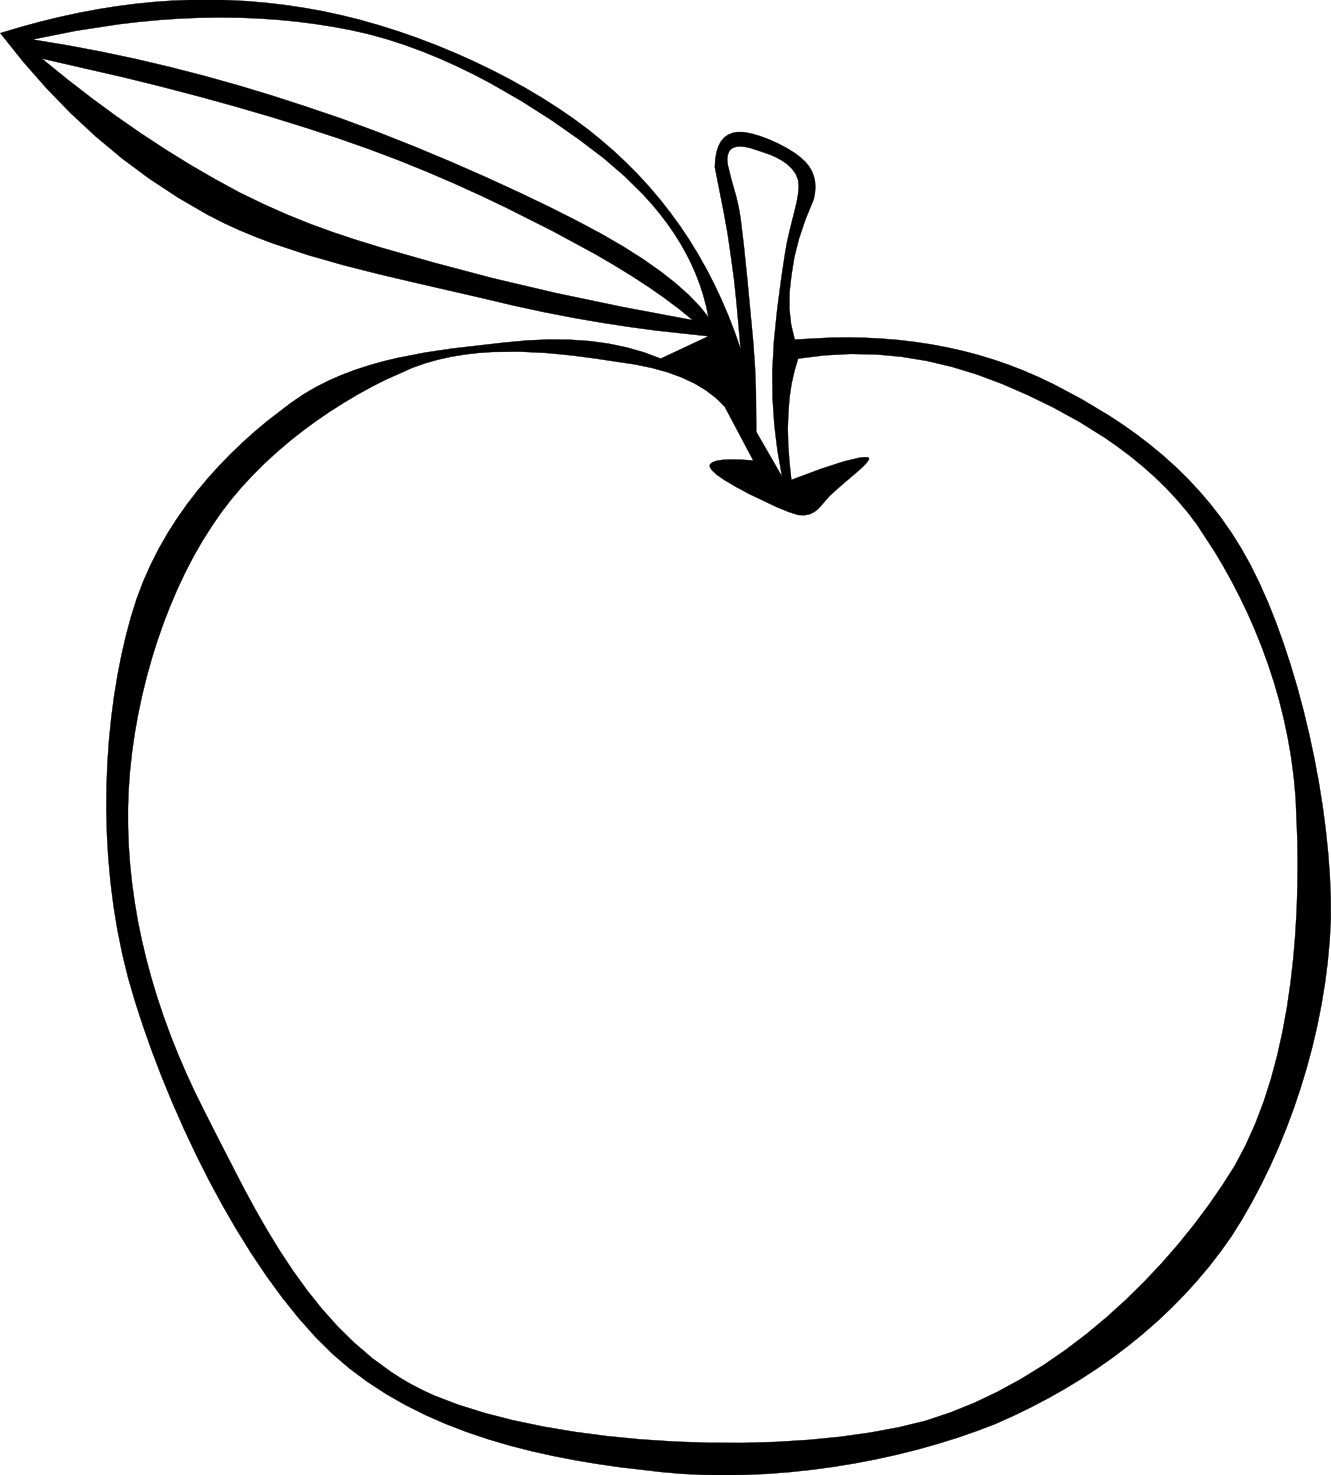 Smiling apple clipart black and white svg transparent library Black And White Fruit Clipart | Clipart Panda - Free Clipart Images svg transparent library